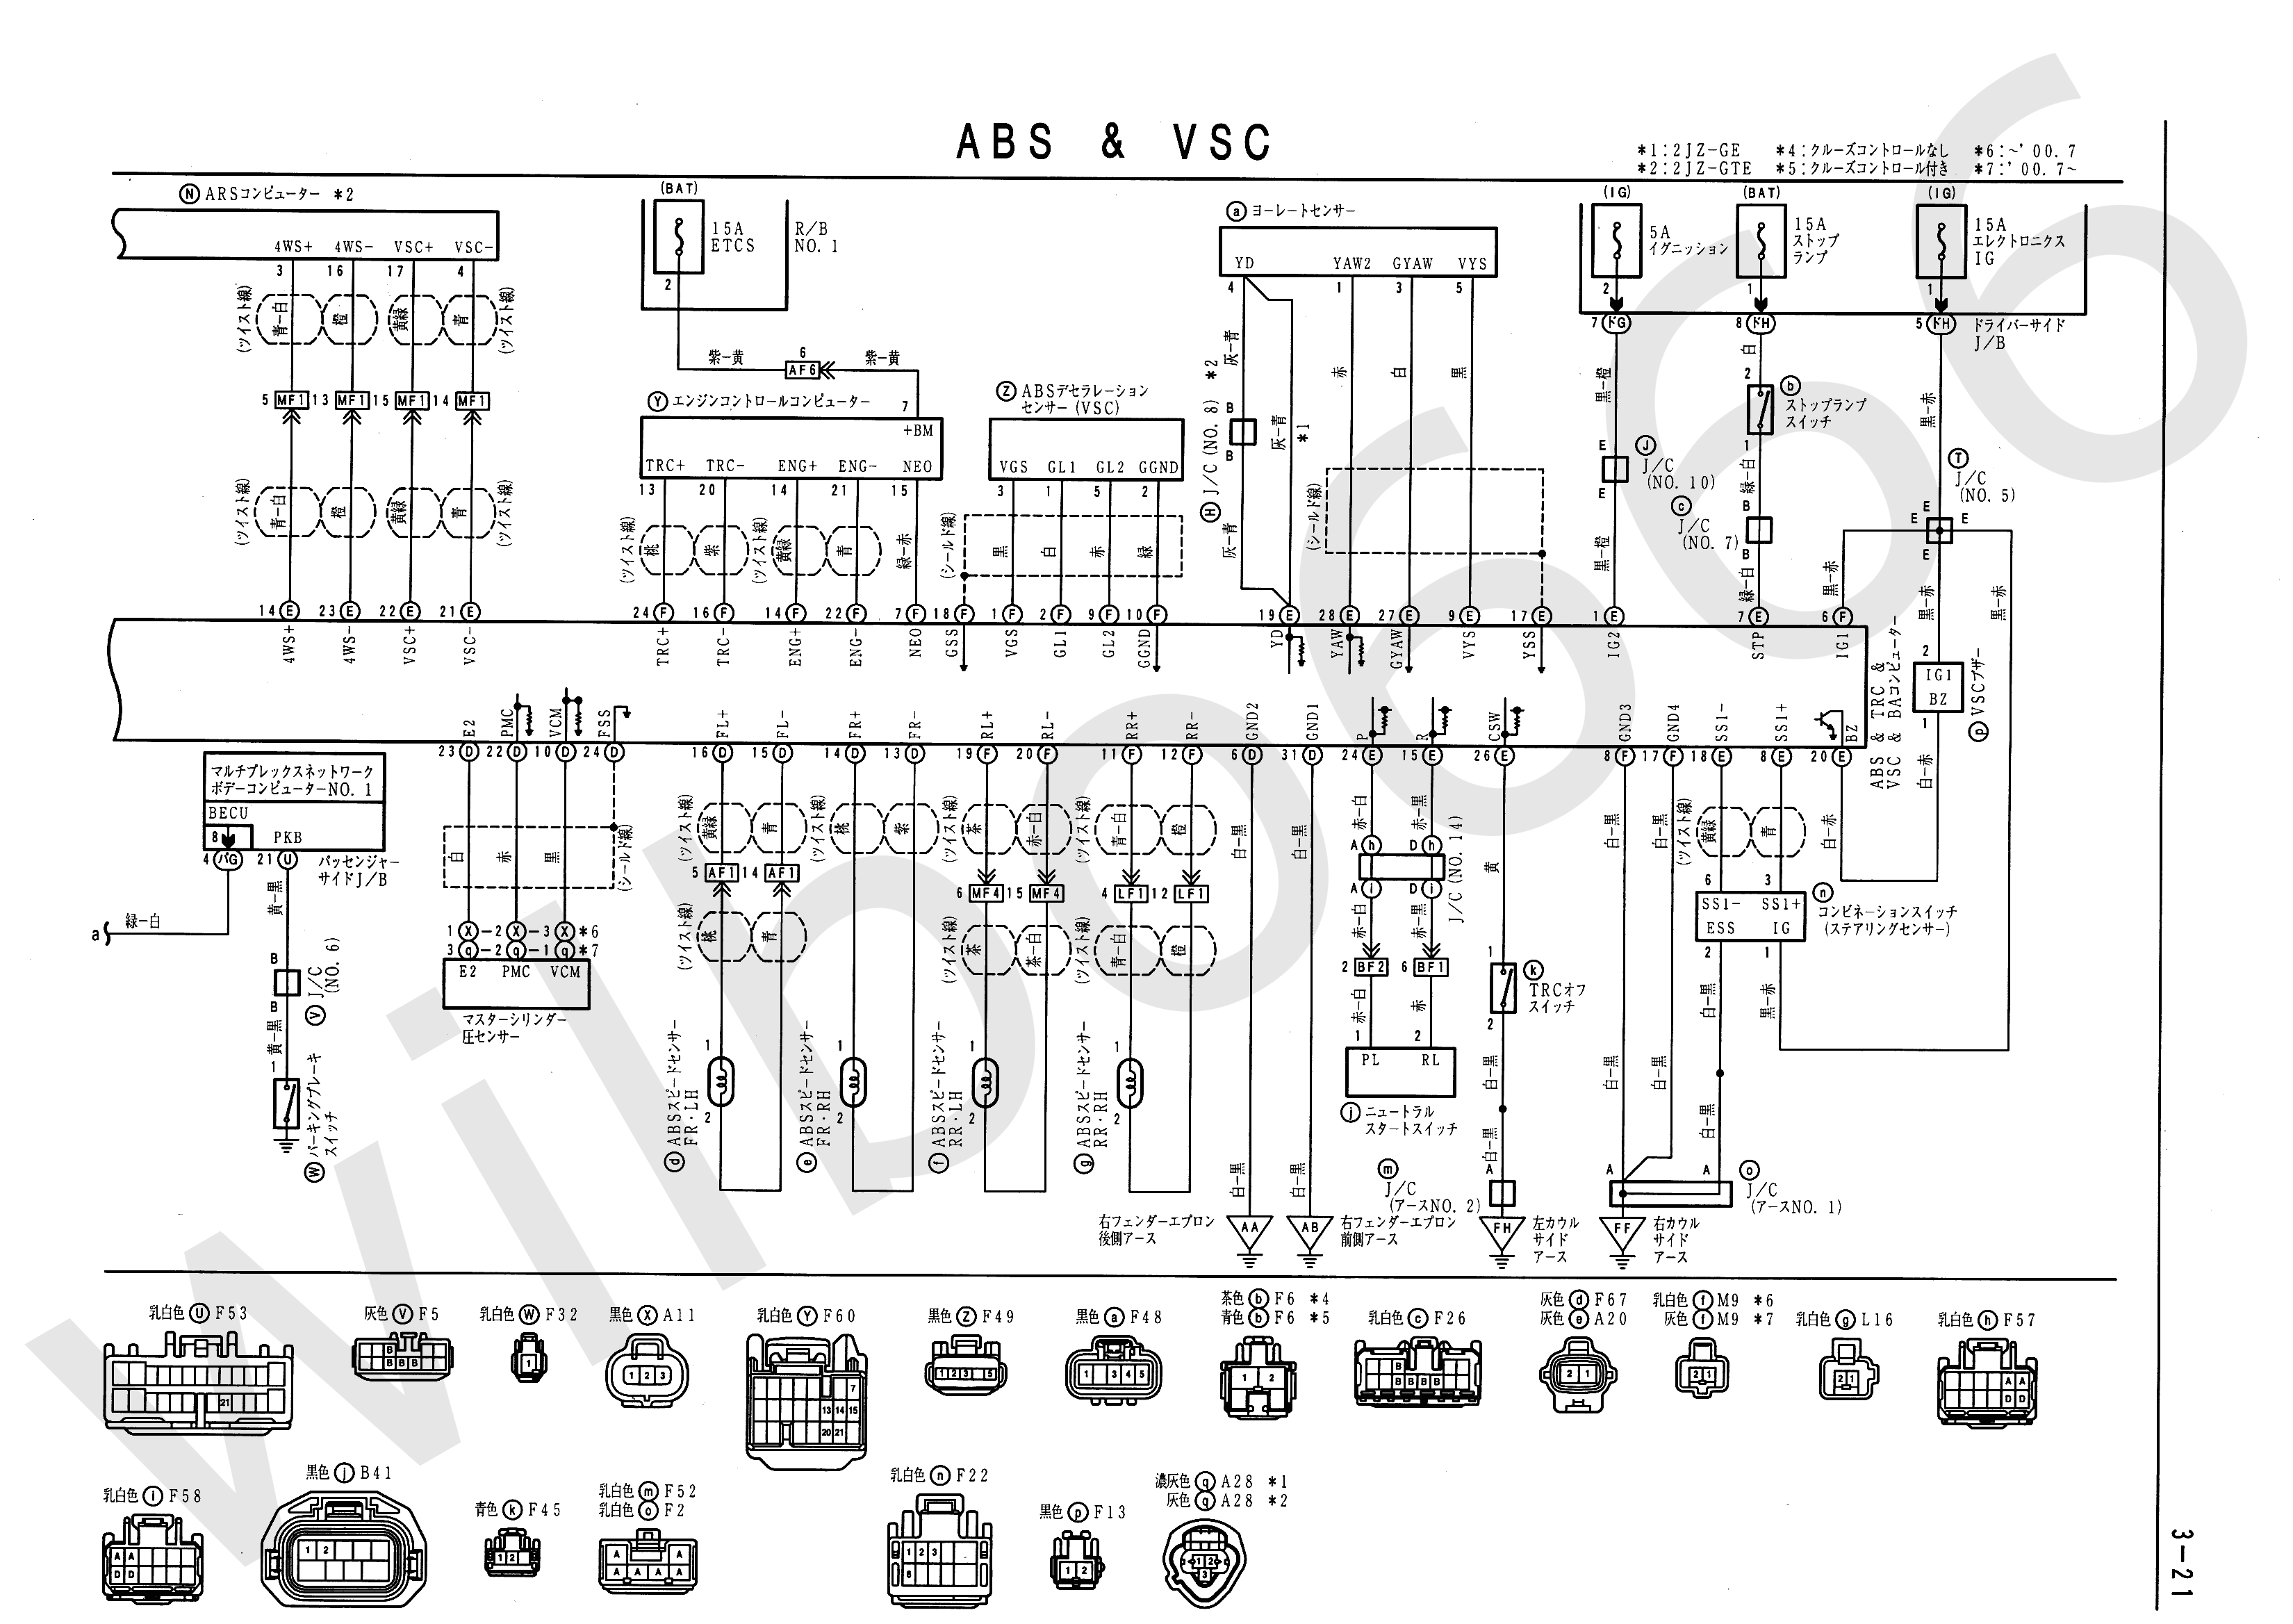 [DIAGRAM] Www Electrical Wiring Diagram Com FULL Version